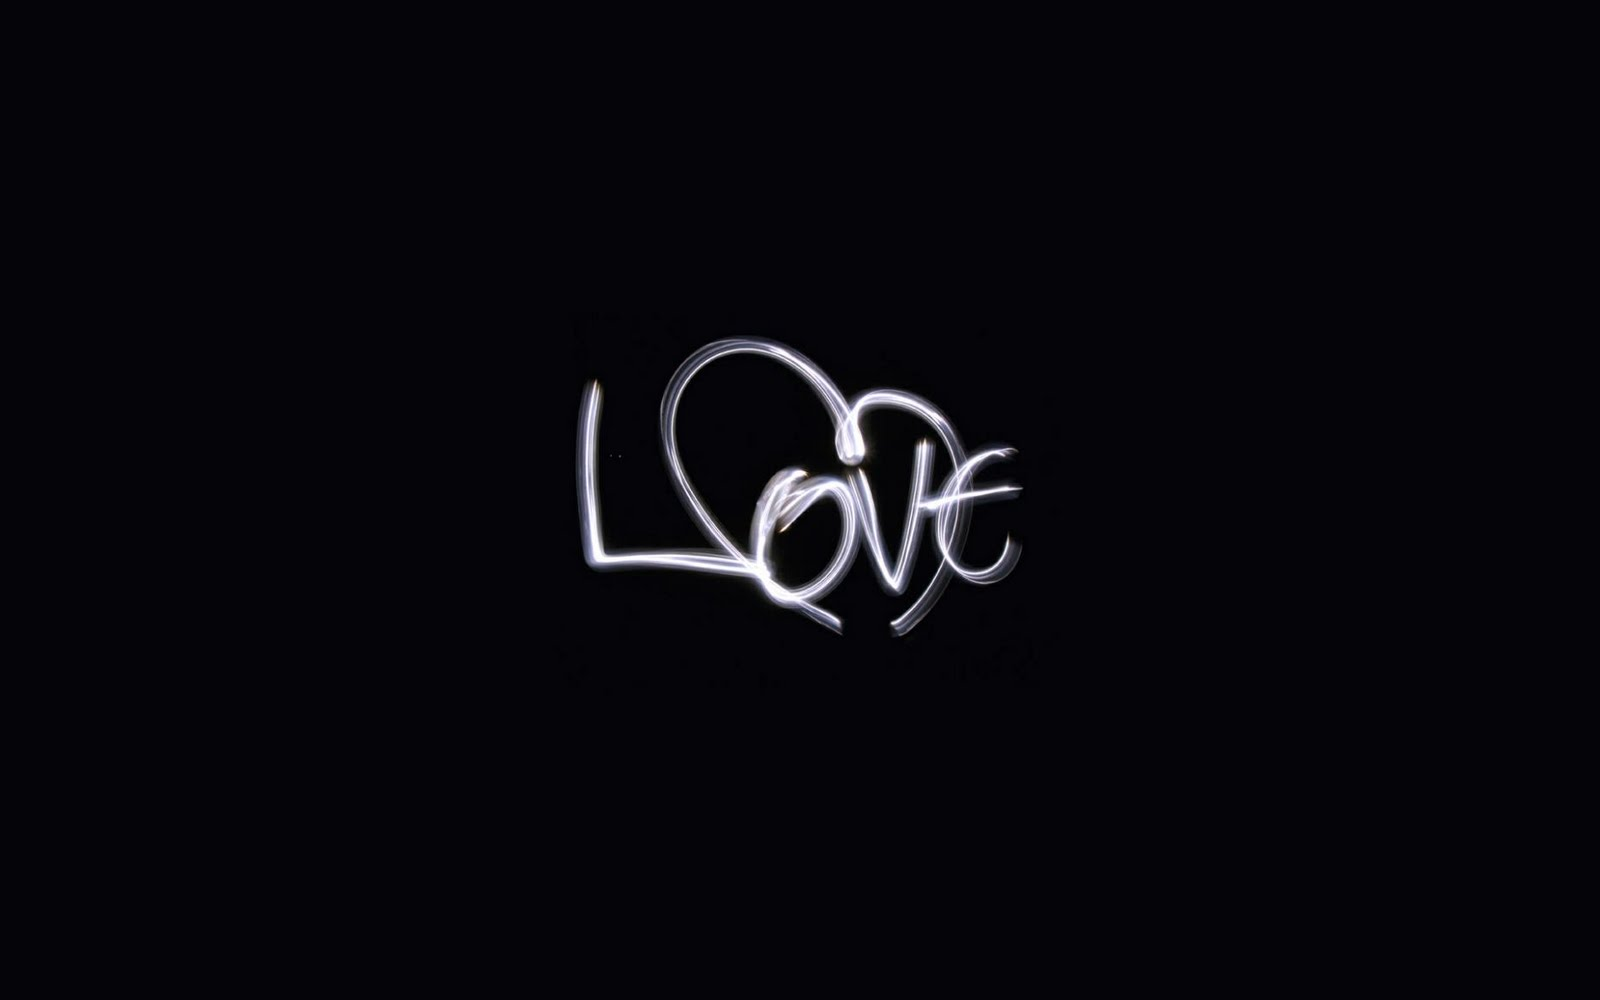 Top Love Wallpaper Full Hd : TOP HD WALLPAPERS: LOVE HD WALLPAPER